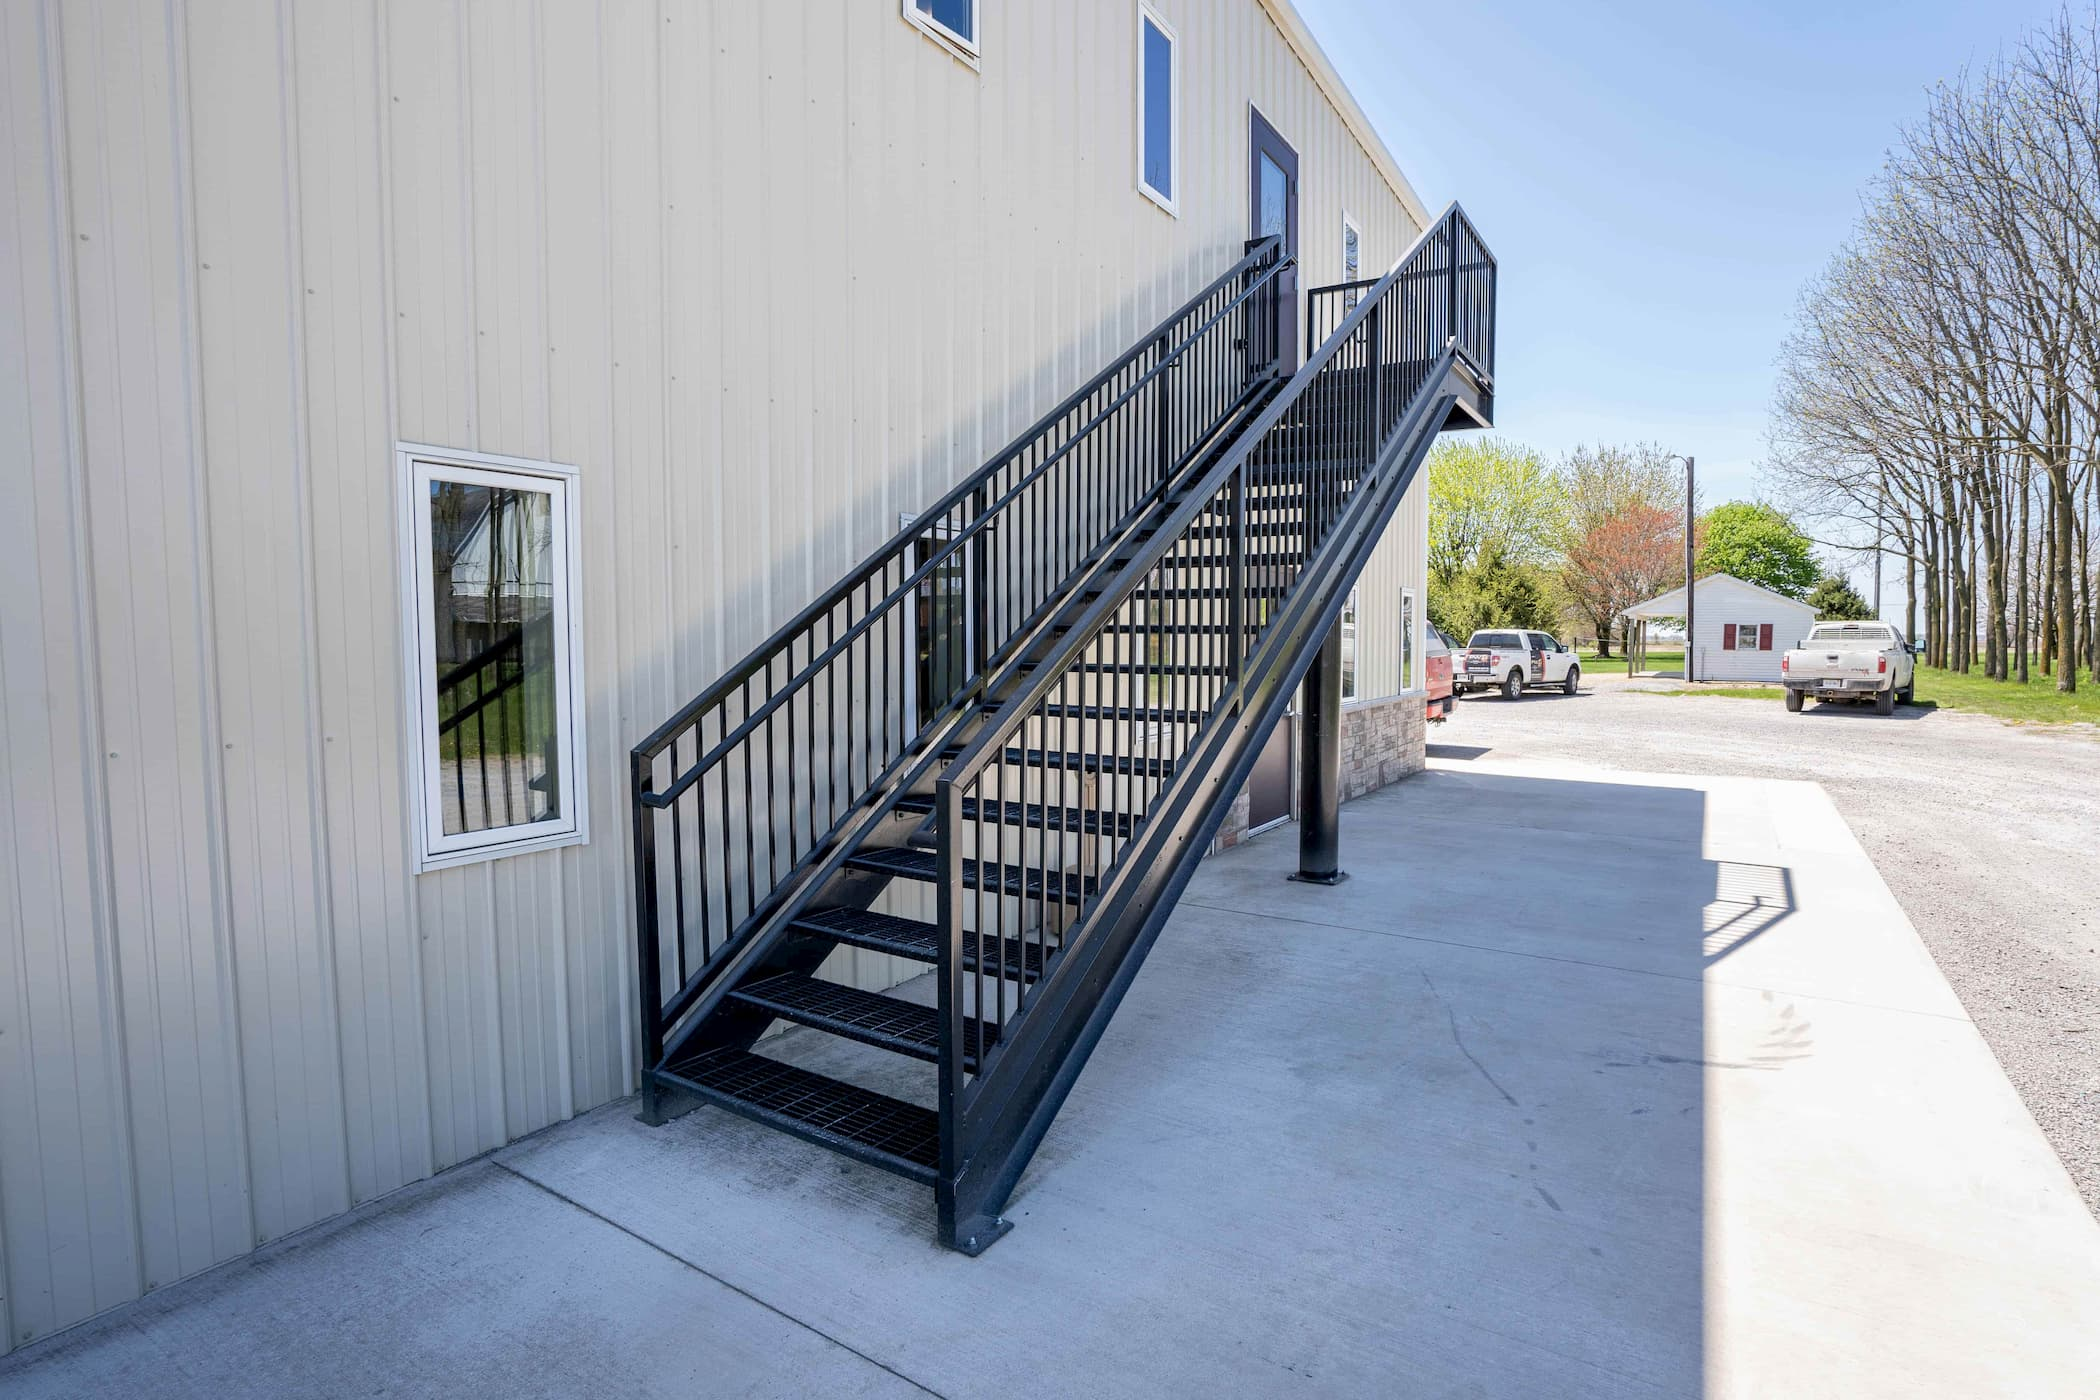 Commercial Black Stair with Top Landing